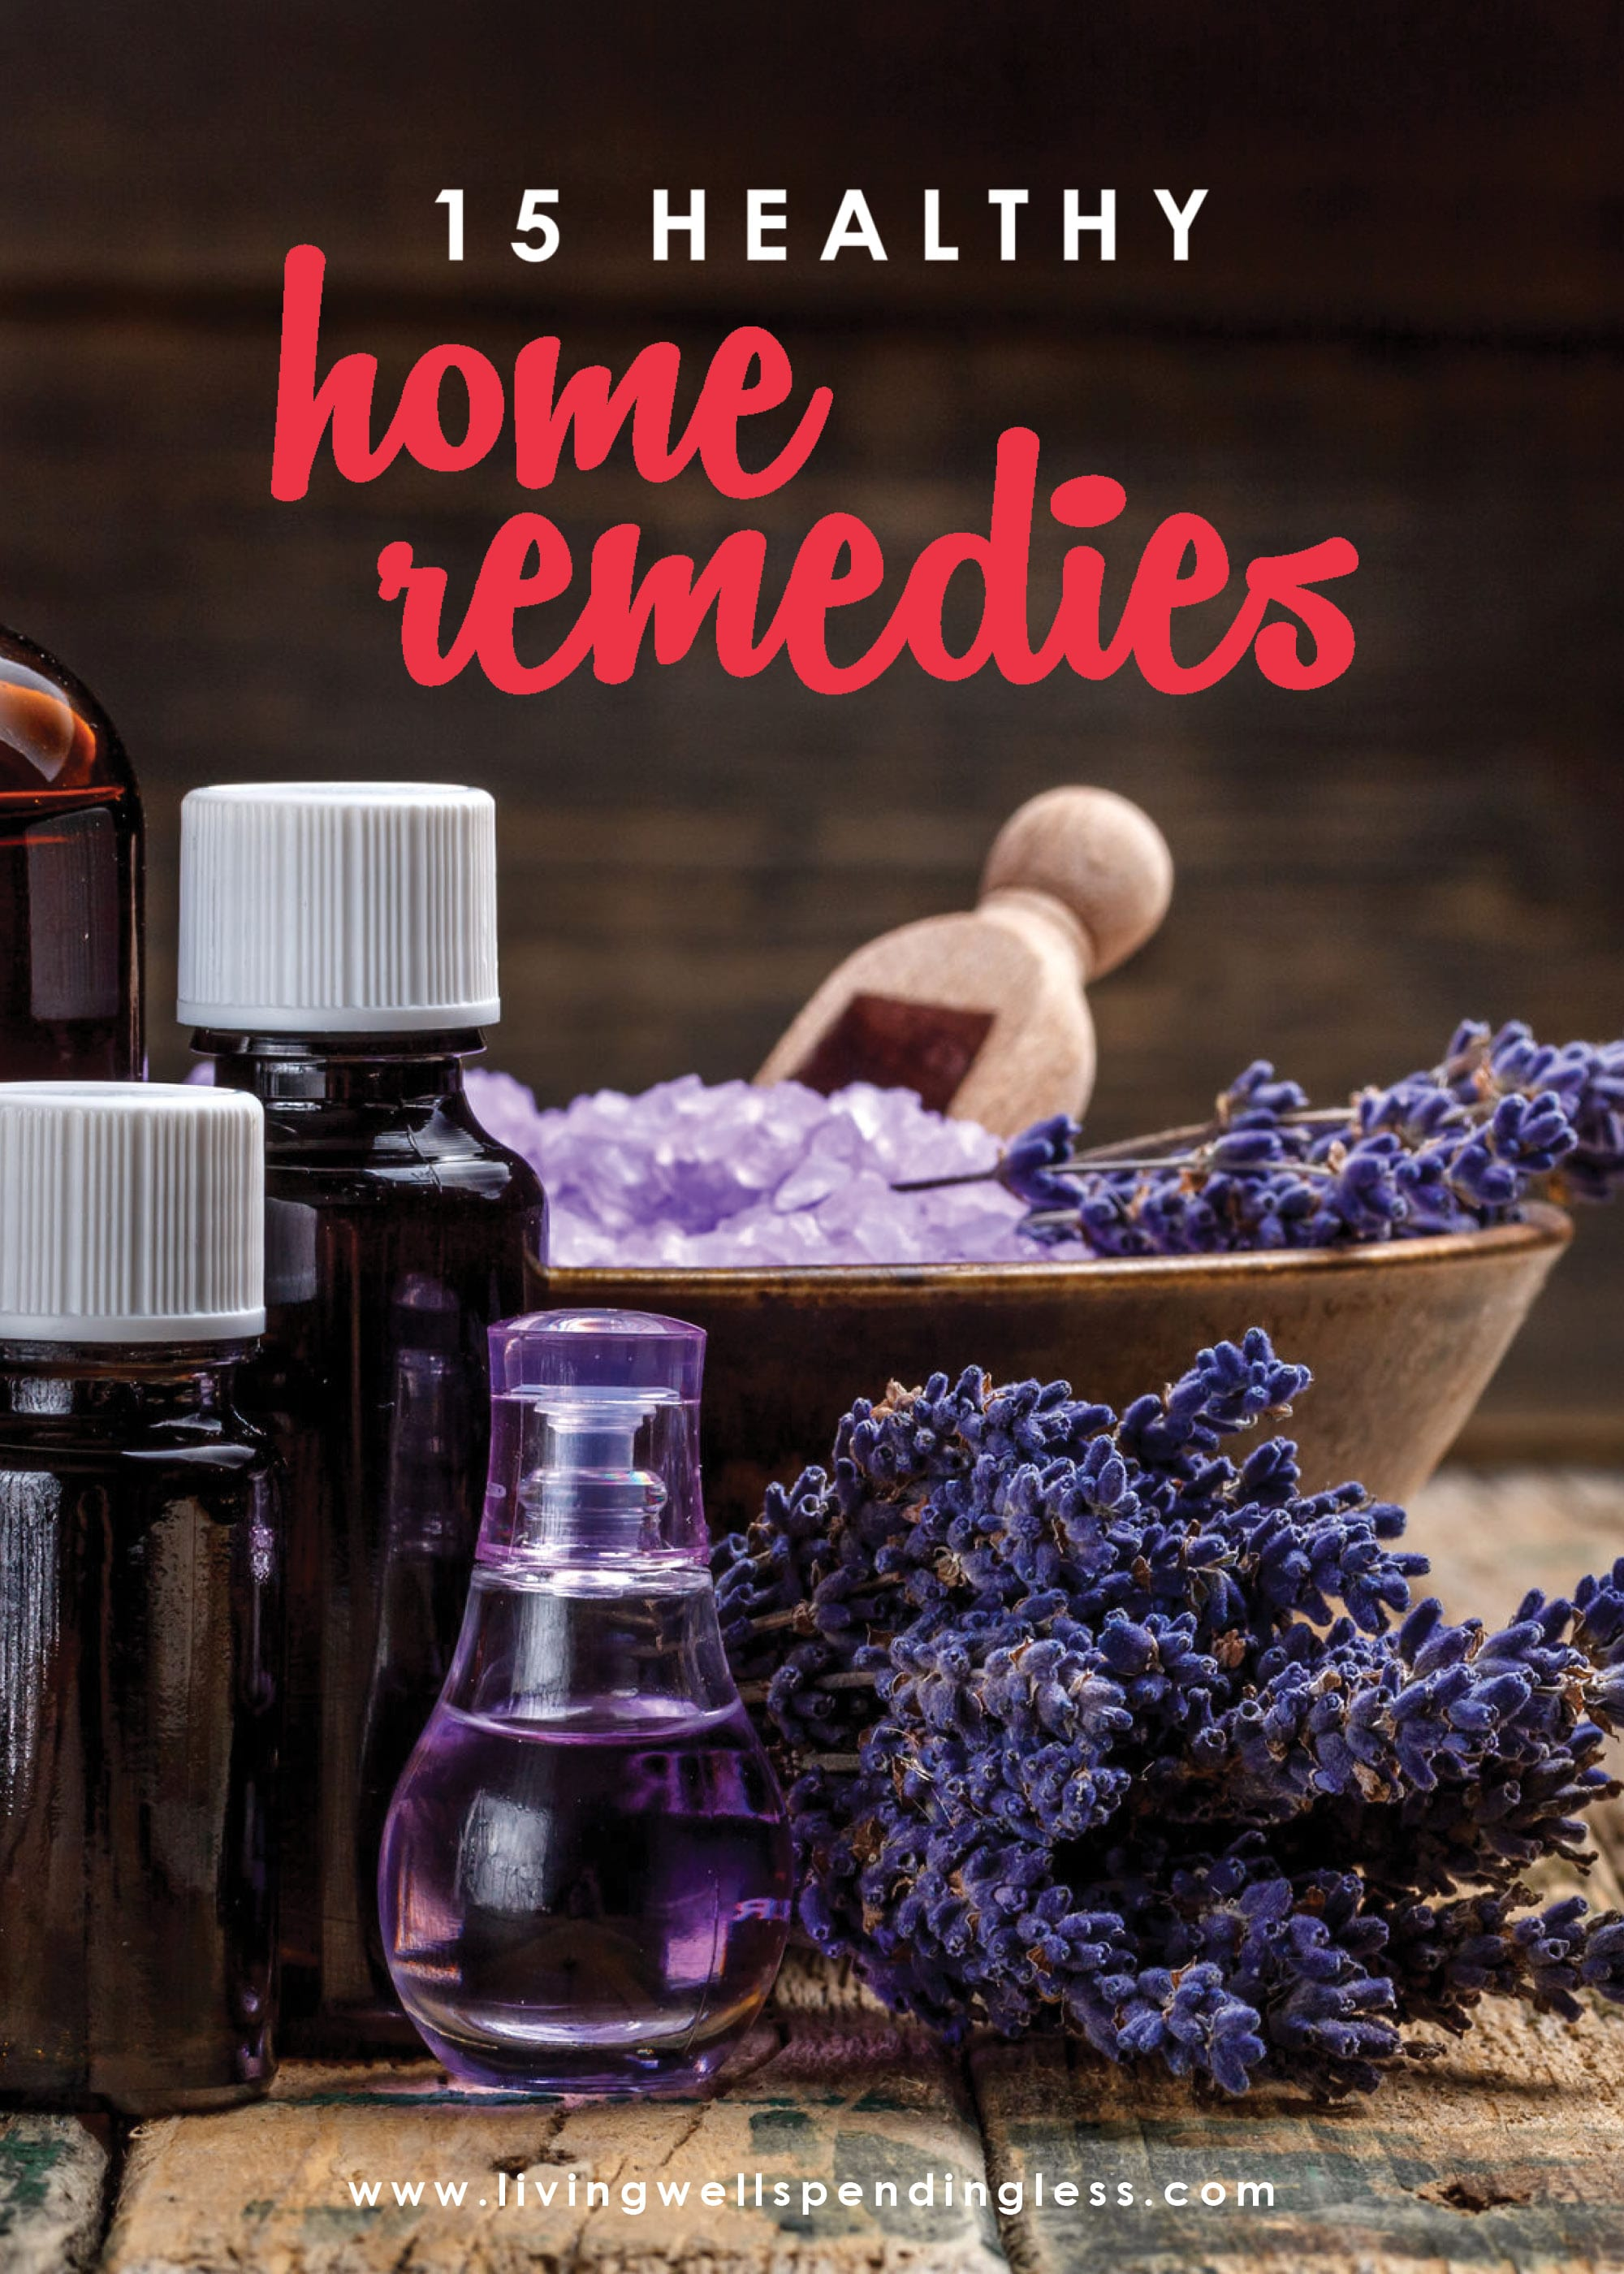 Wondering which home remedies really work and which ones are, well, just a little silly? We did a little digging to uncover 15 healthy home remedies that might actually make you feel better. From coughs and colds to nausea, stress, and even warts, don't miss these simple solutions using a few natural ingredients you might already have on hand!